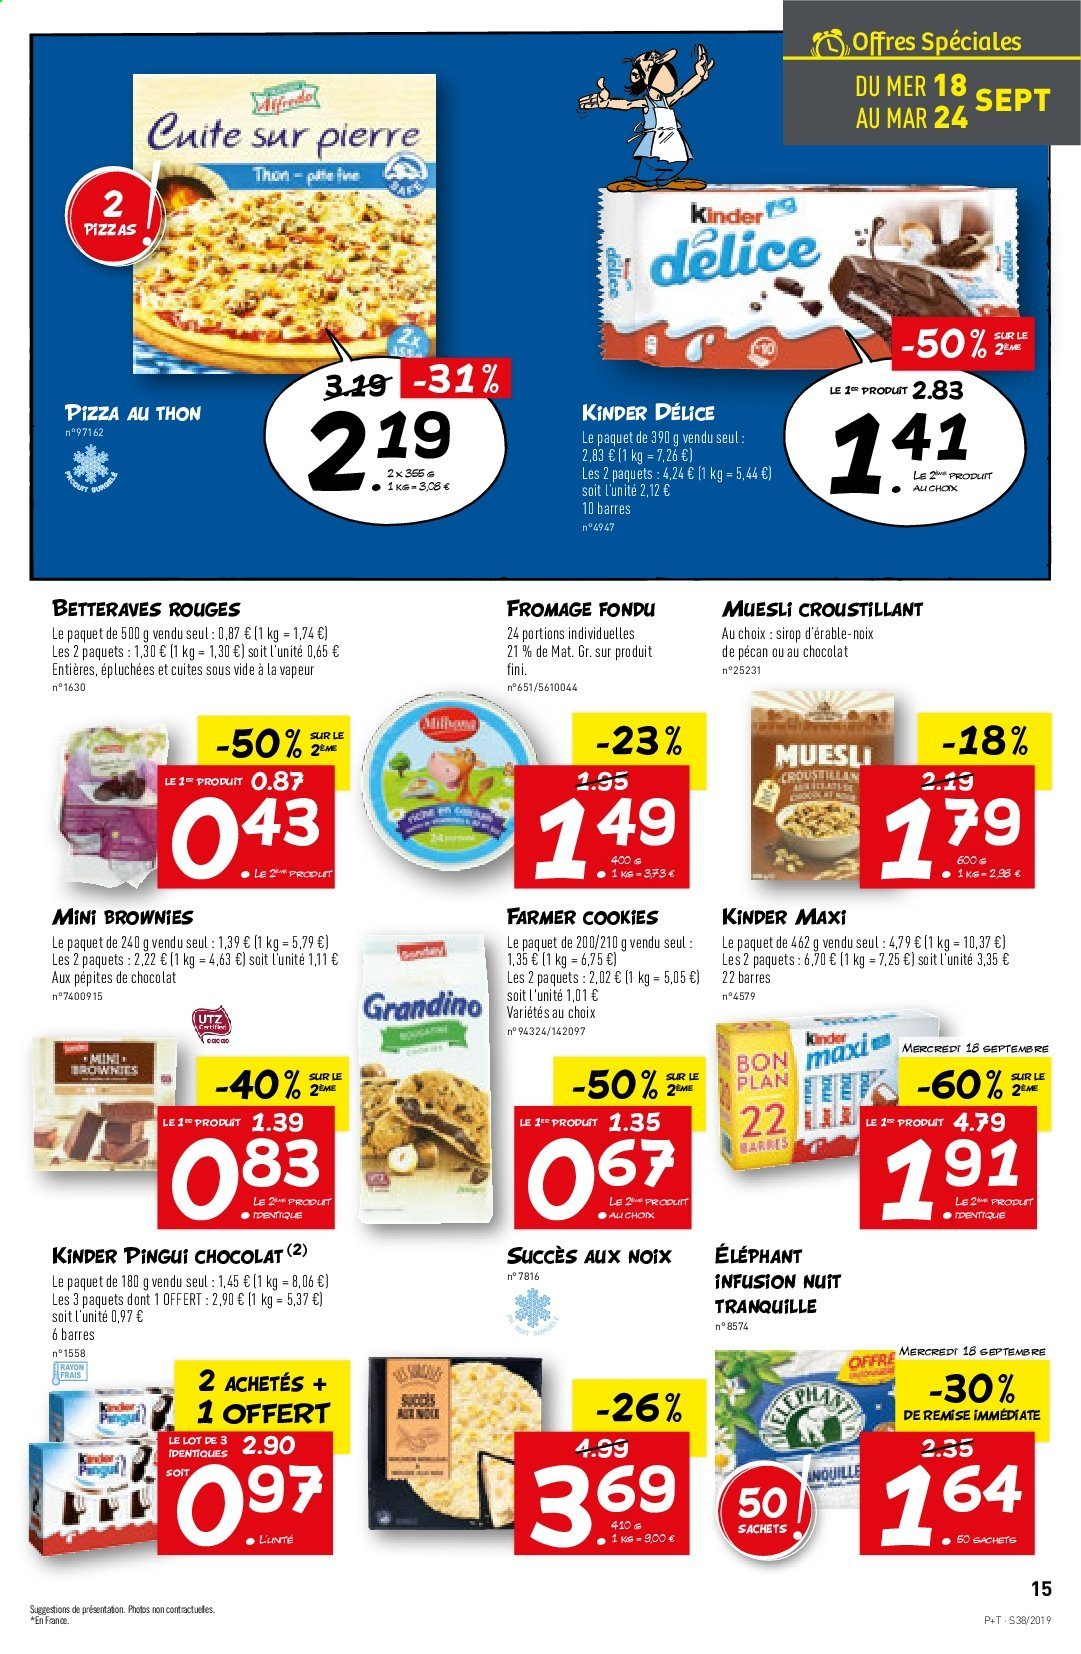 Catalogue Lidl - 18.09.2019 - 24.09.2019. Page 15.